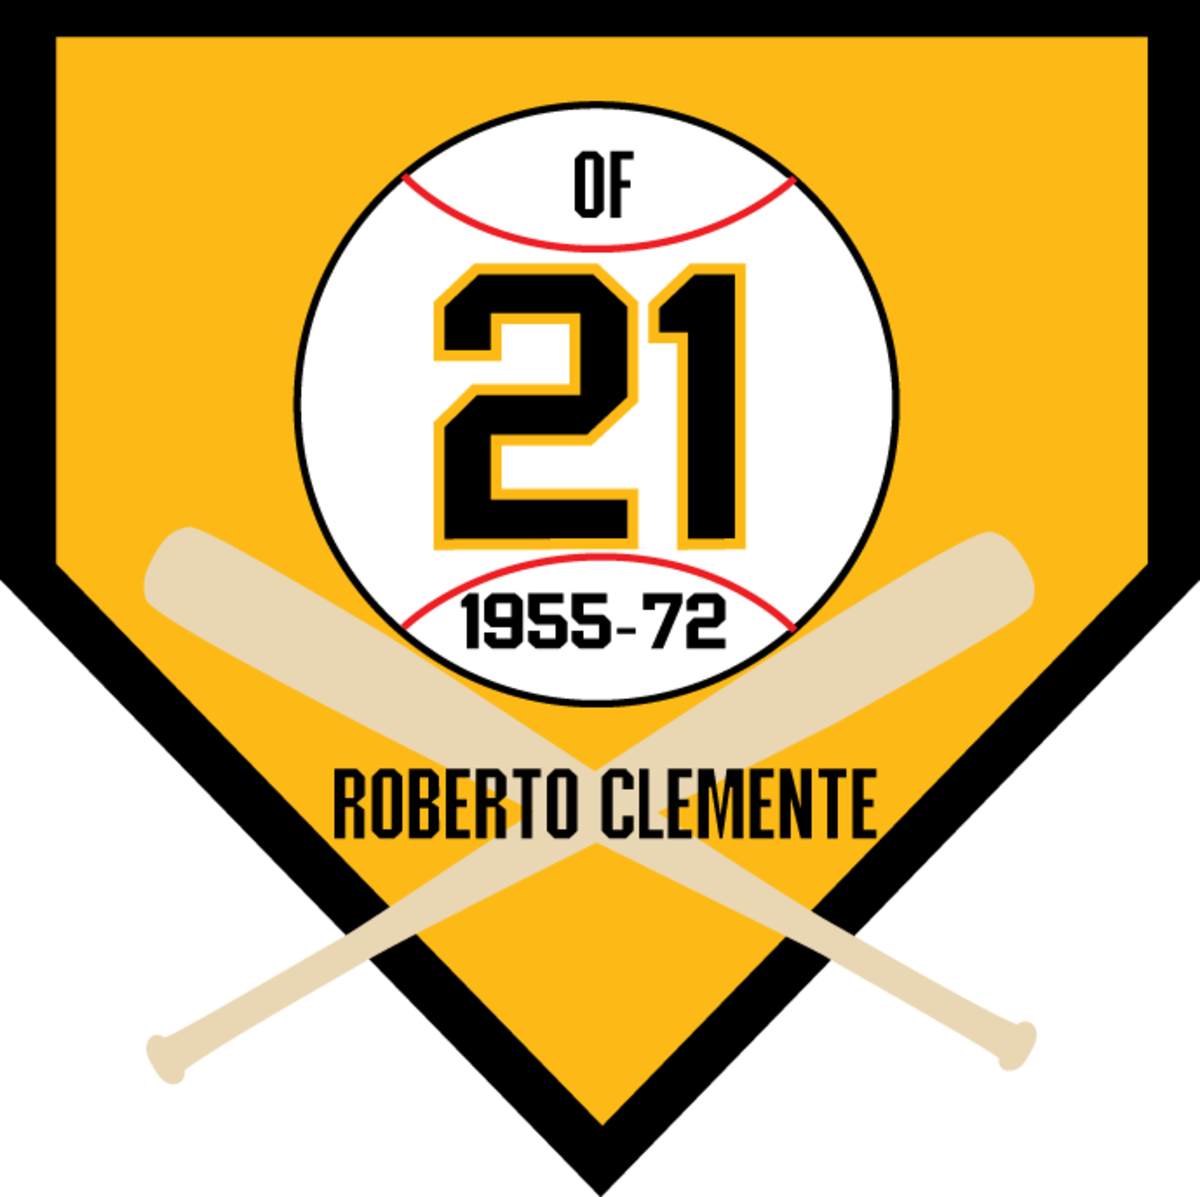 The number of Clemente's jersey.